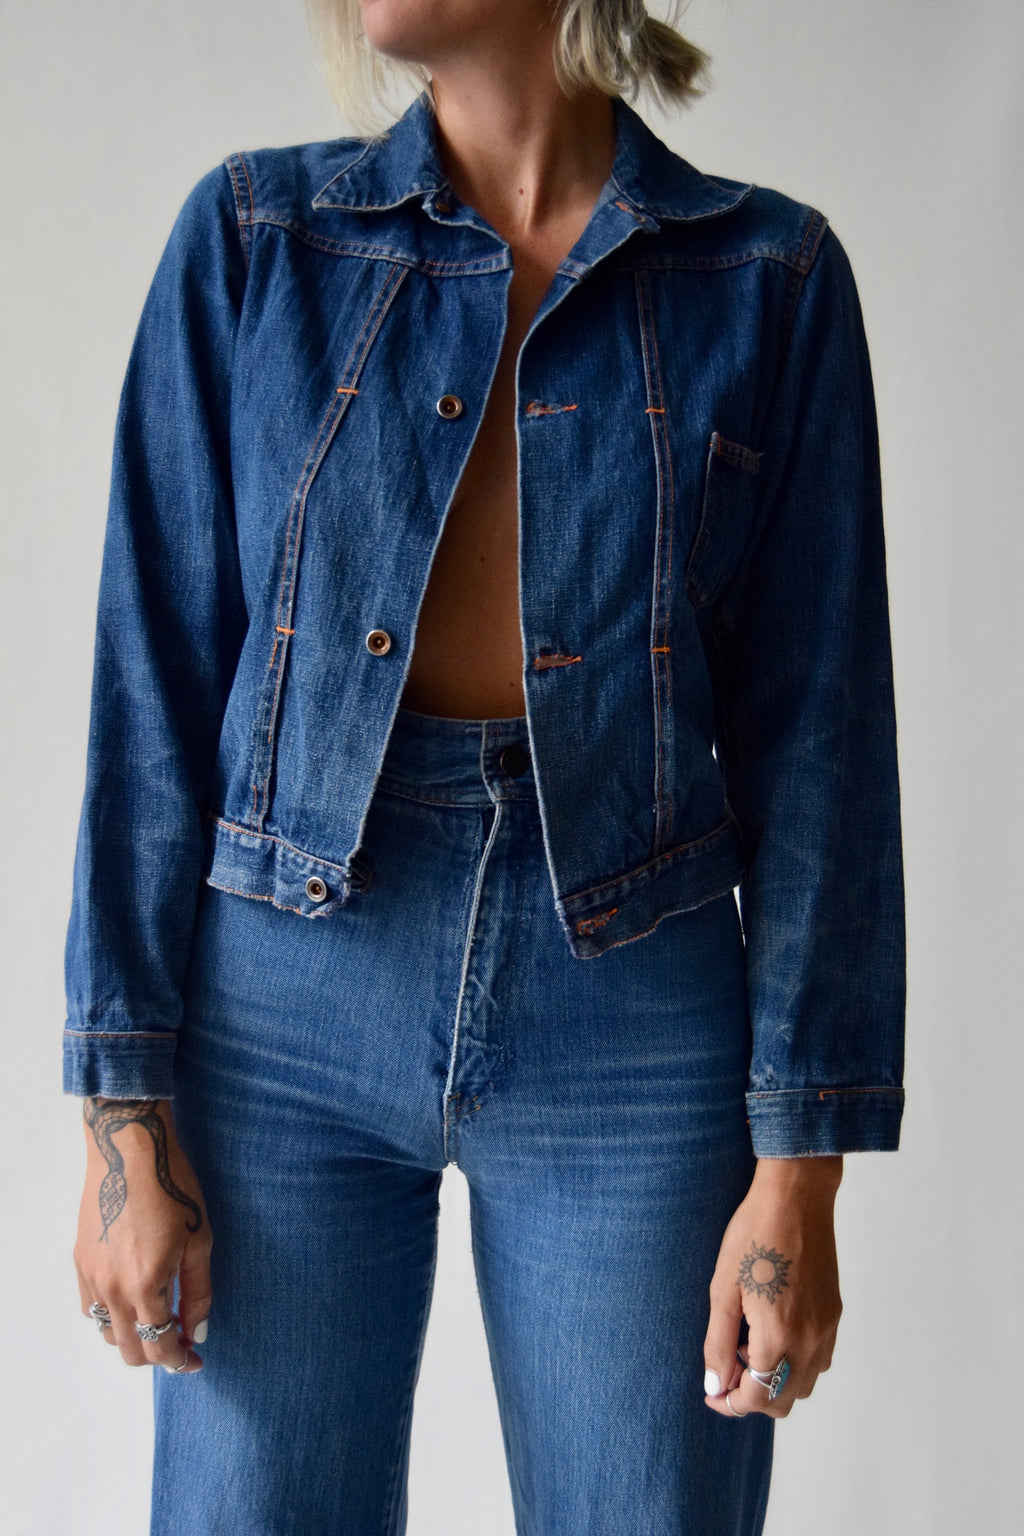 Vintage 1950's Denim Jacket FREE SHIPPING TO THE U.S.